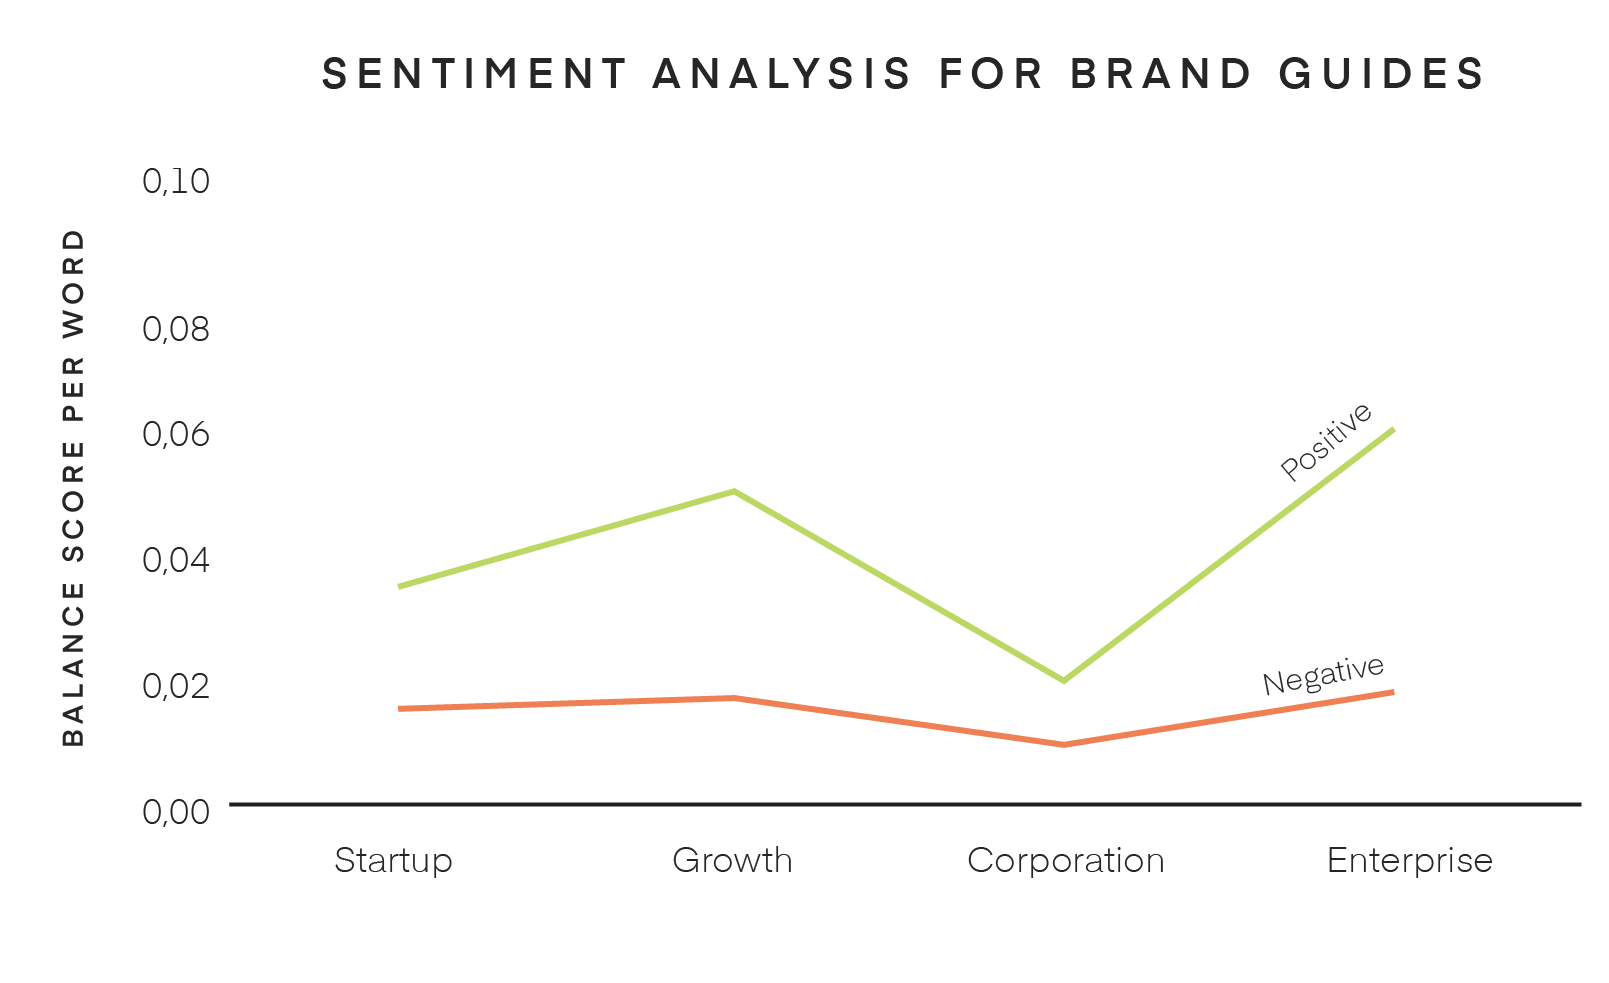 Sentiment analysis for large company brand guides